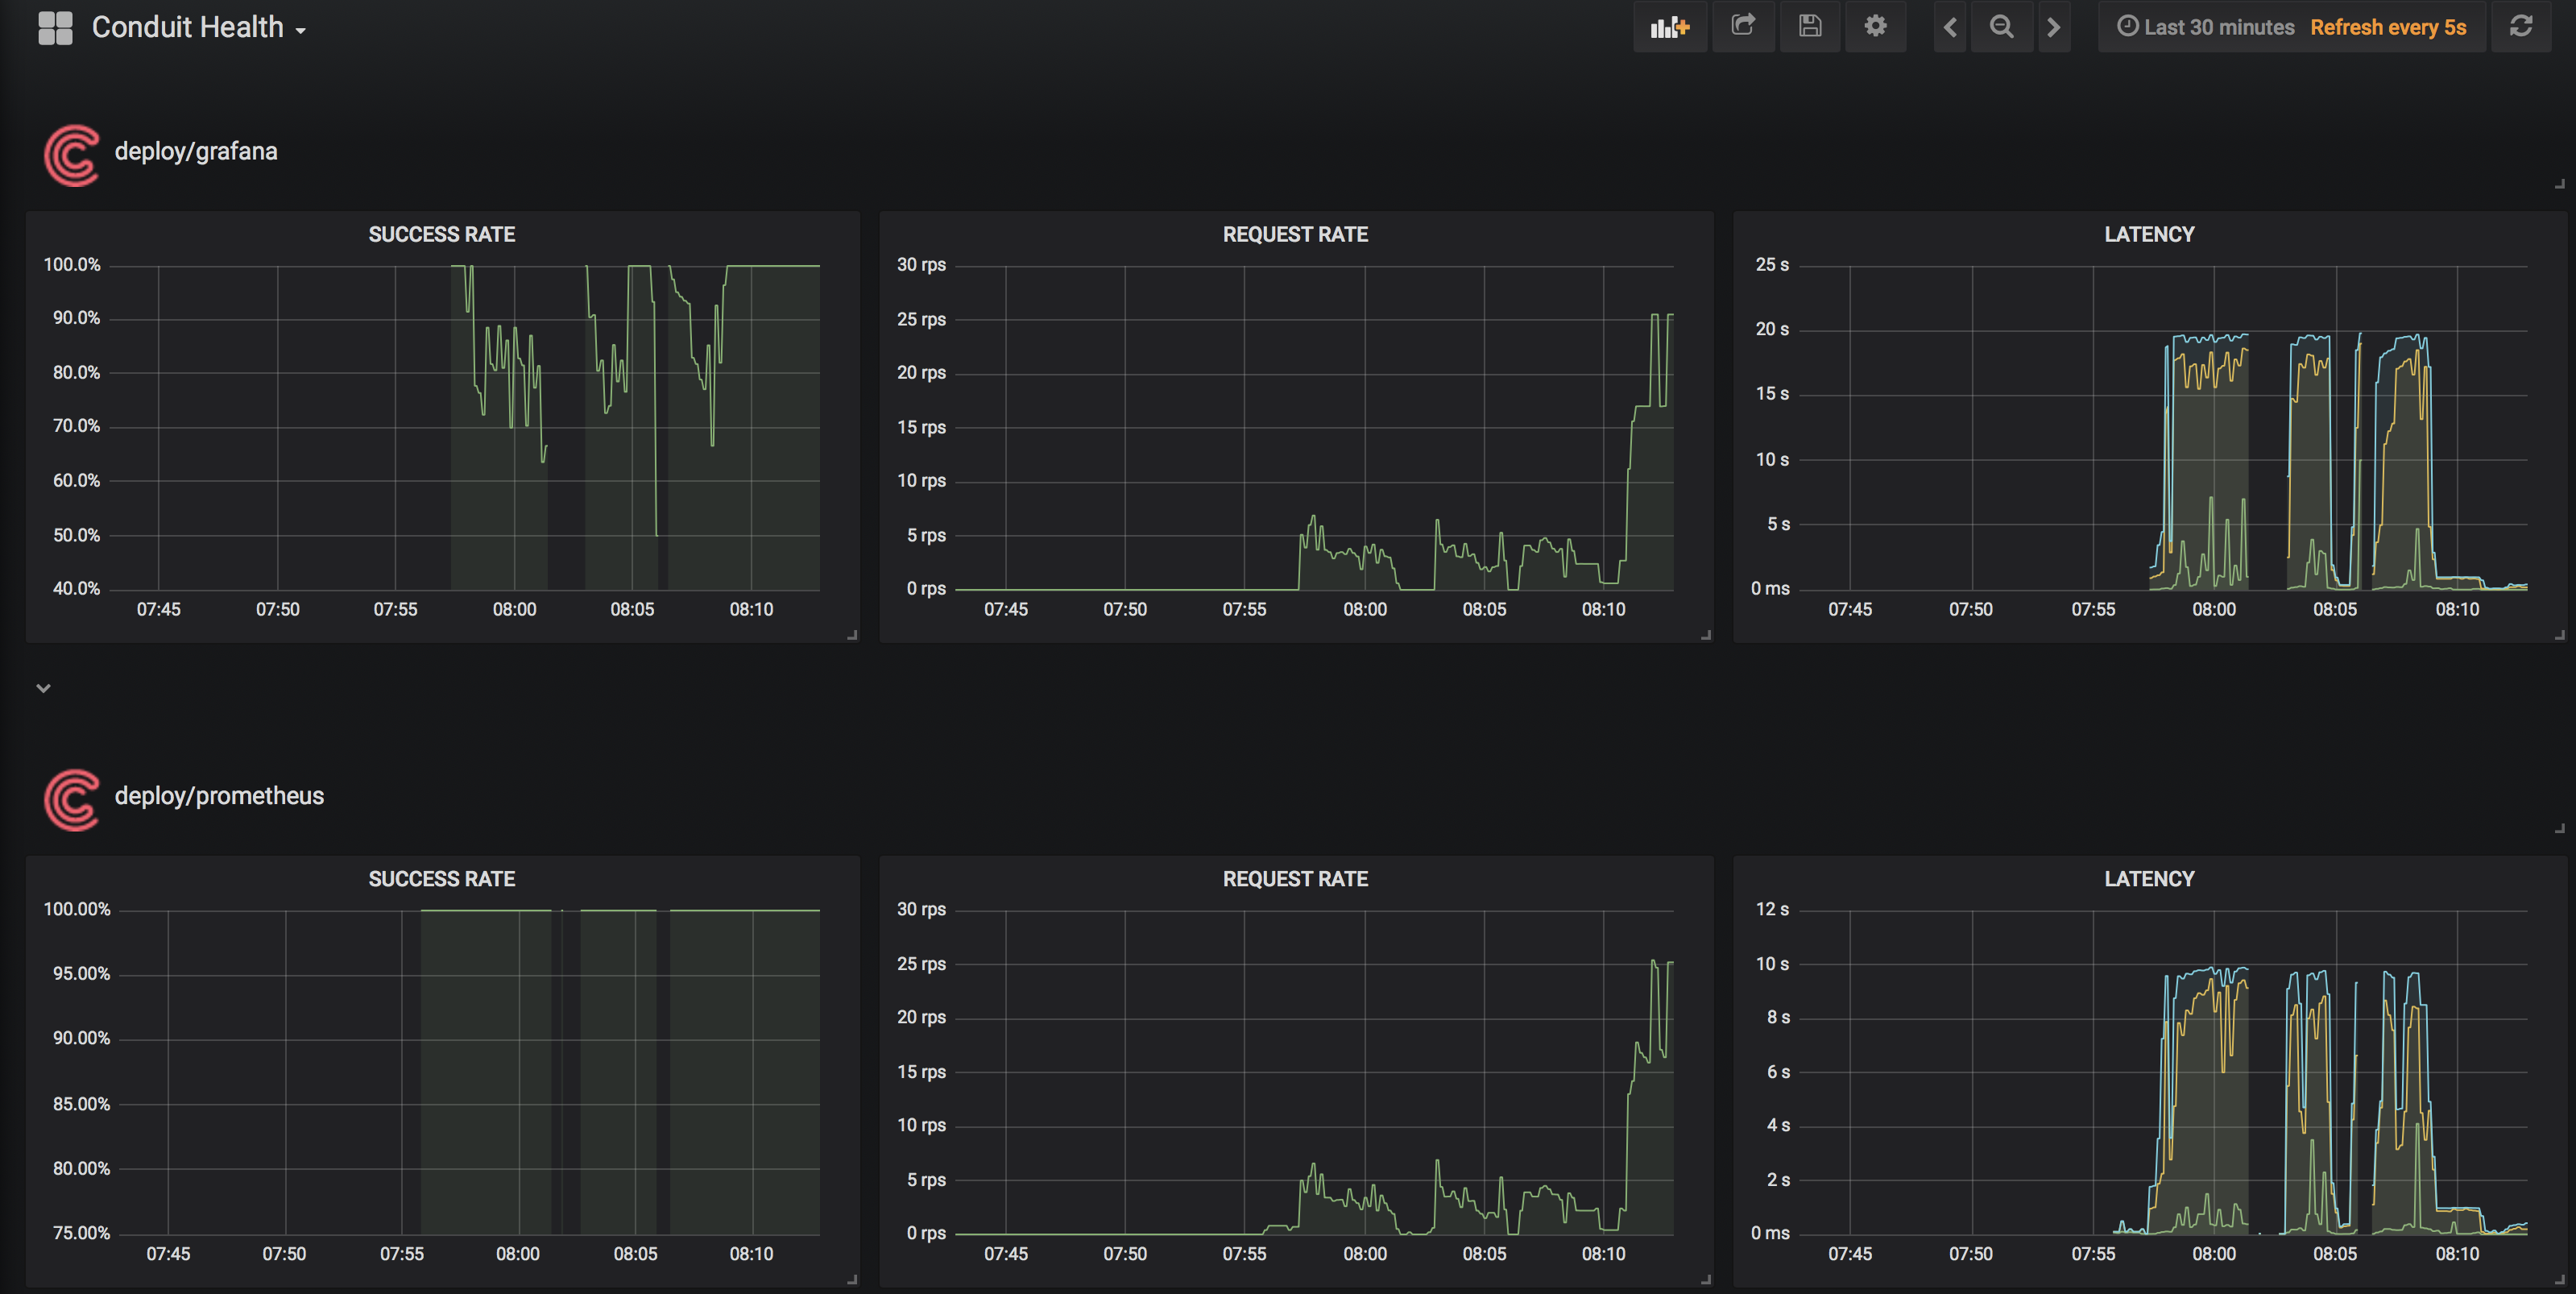 Grafana and Prometheus latencies skyrocket when dashboard is